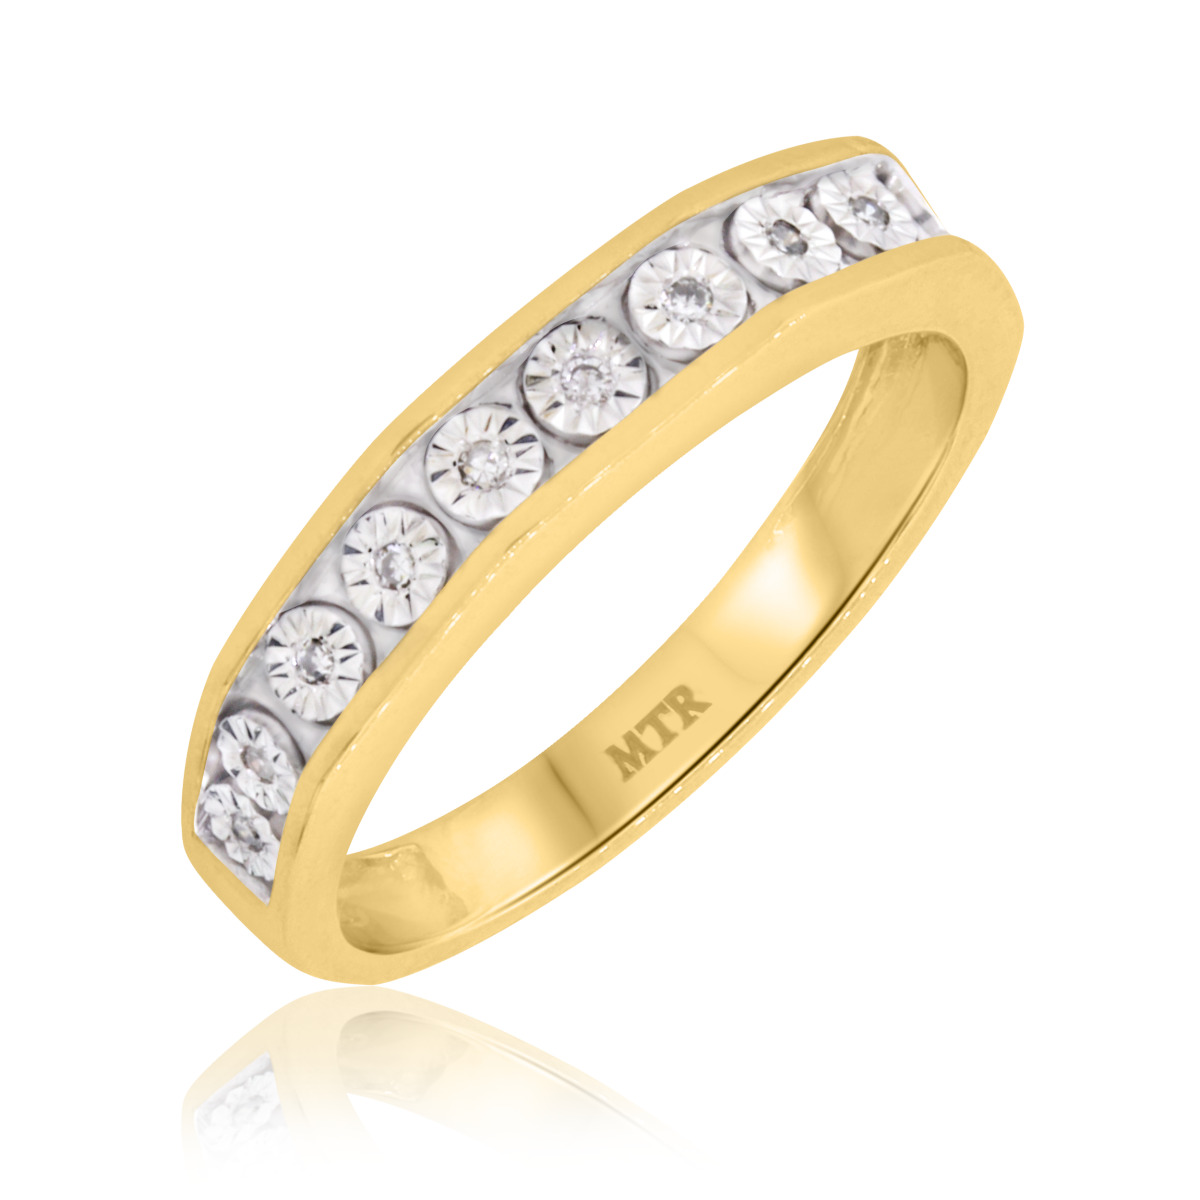 1/10 Carat T.W. Diamond Ladies Wedding Band  14K Yellow Gold